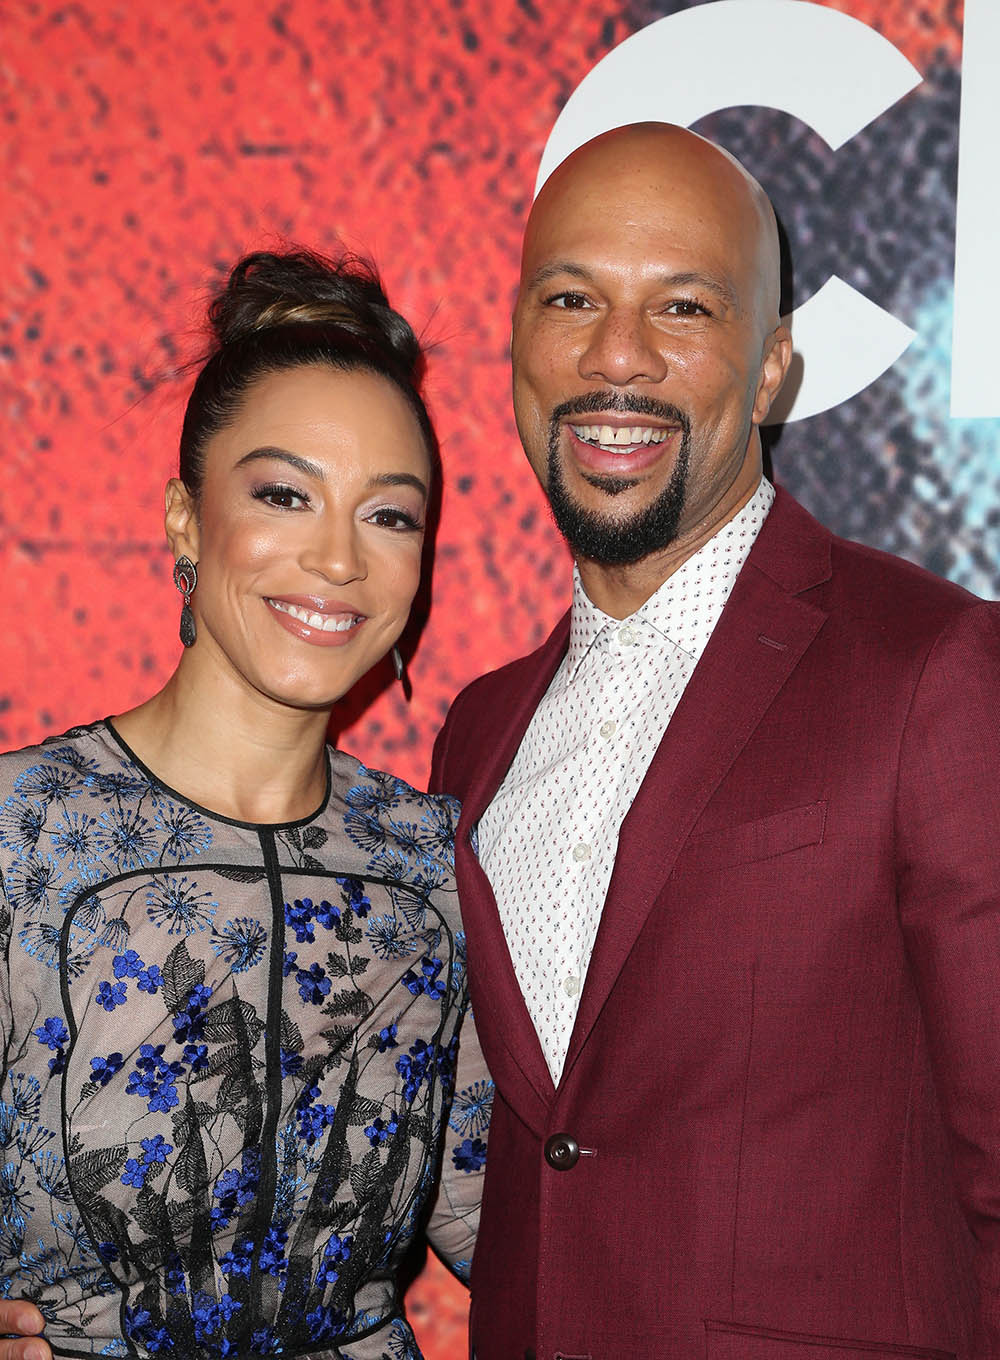 Common and Angela Rye